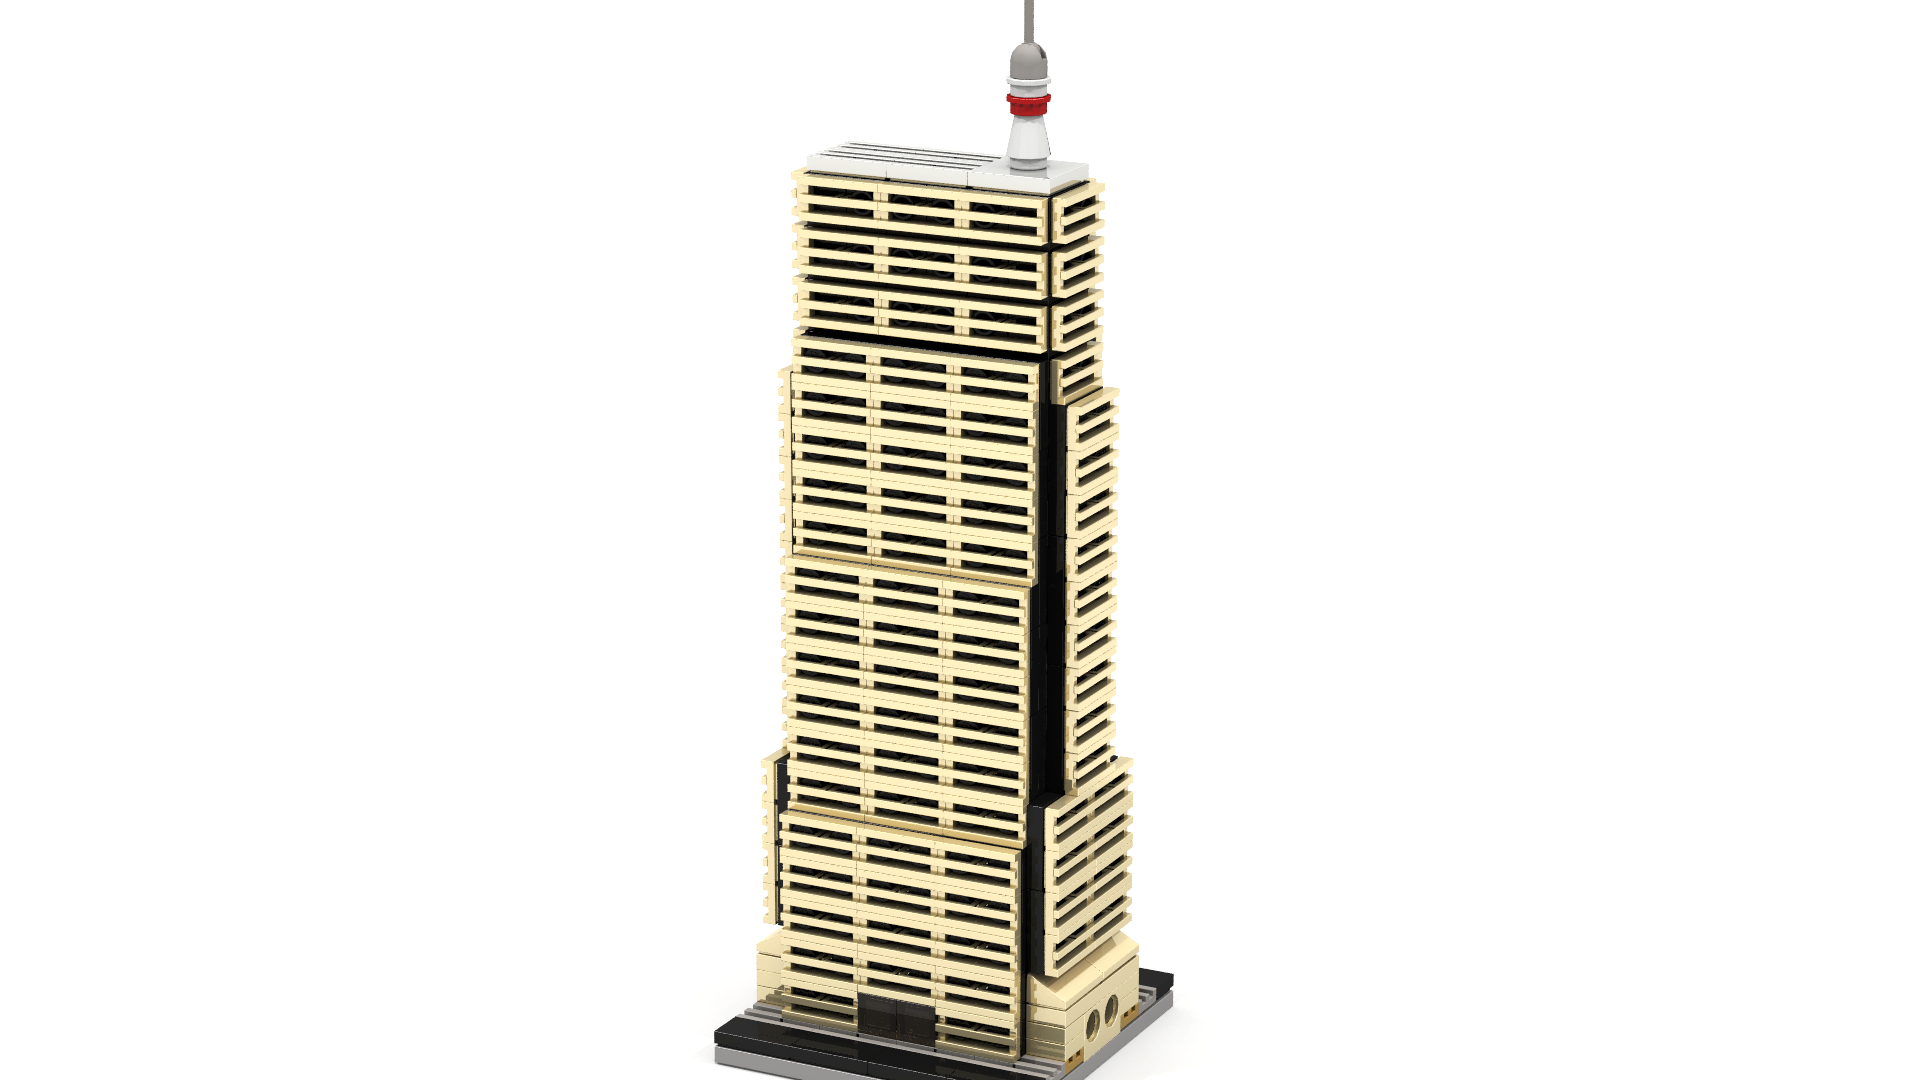 PNG Tall Building - 59219